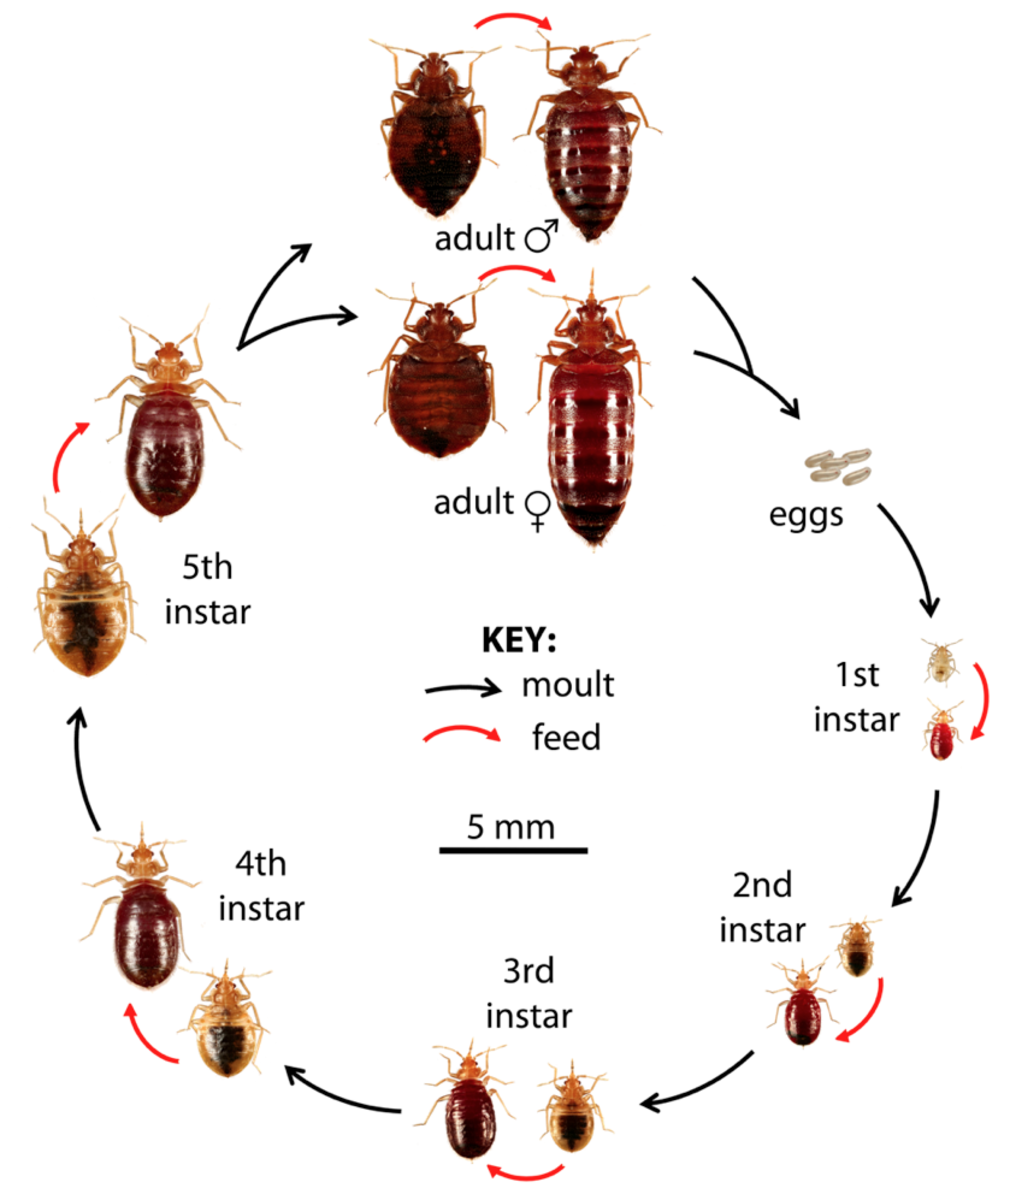 How to Get Rid of Bed Bugs: A Low-Cost DIY Extermination Without Toxic Poisons